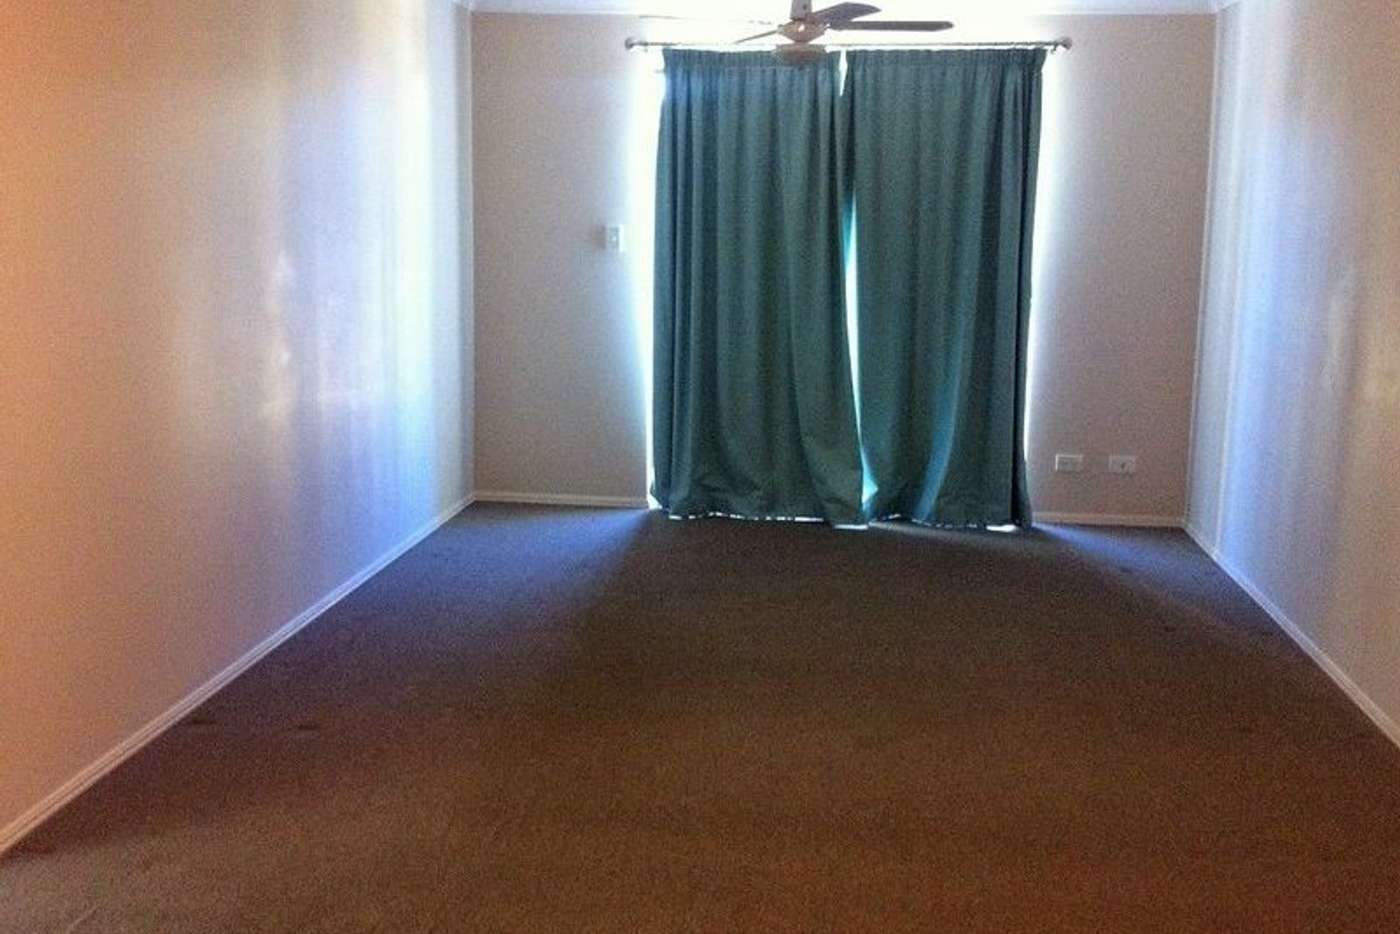 Main view of Homely unit listing, 7/12-14 Monaco Street, Surfers Paradise QLD 4217